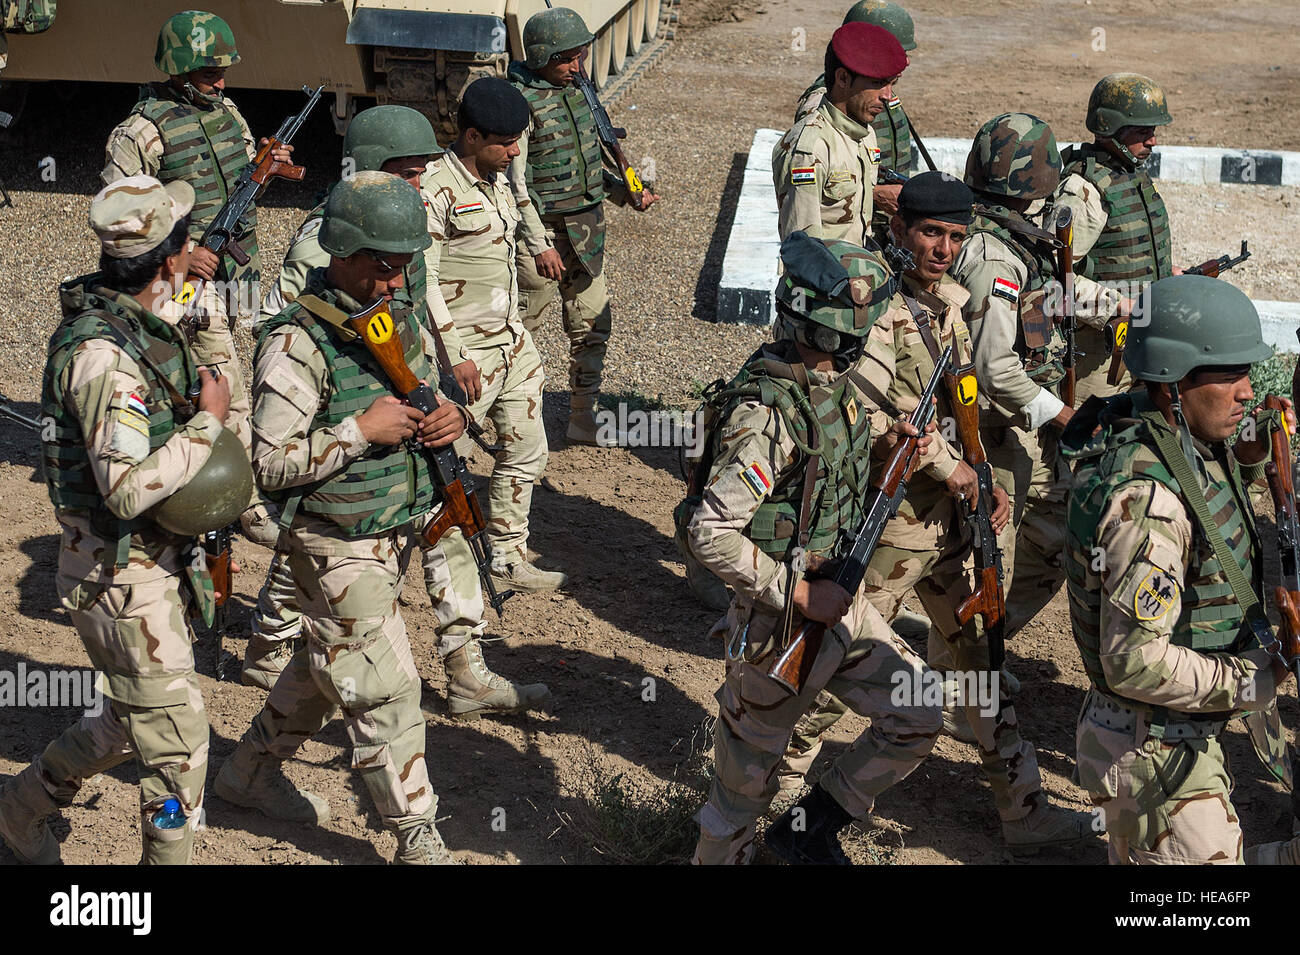 Iraqi army soldiers march en route to conduct tactical